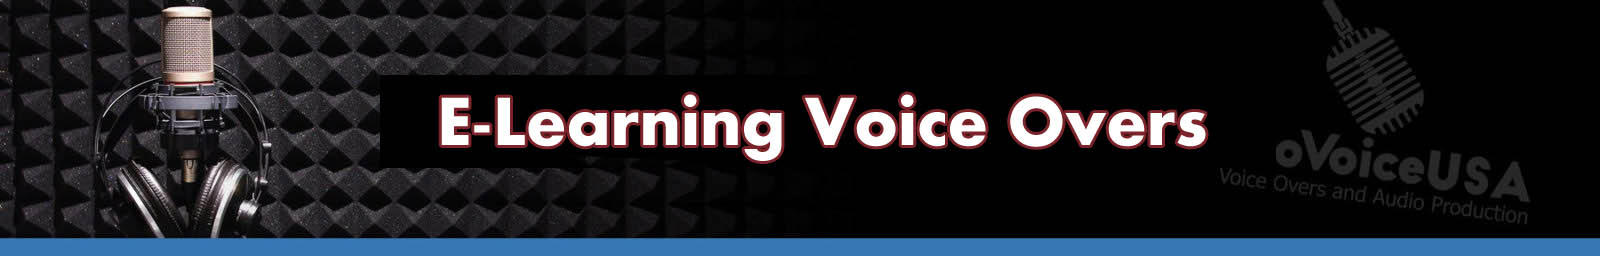 e-learning Voice Overs | American Voice Recording Service | ProVoice USA